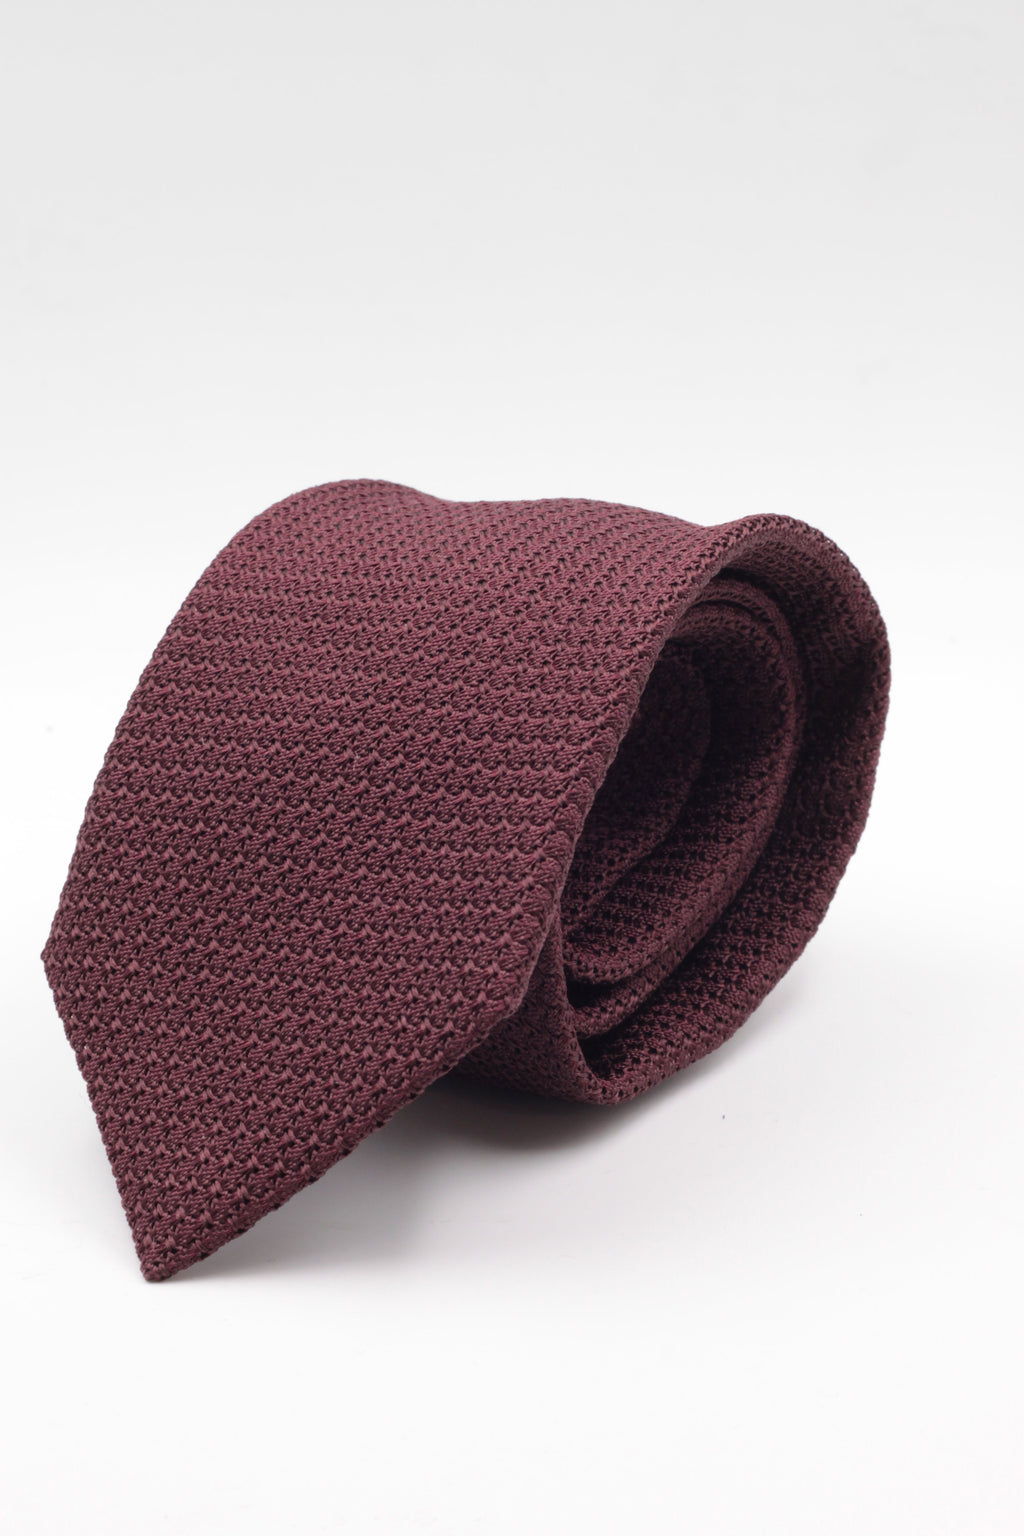 100% Silk Grenadine Garza Grossa Woven in Italy Unlined Burgundy plain tie Handmade in Italy 8 cm x 150 cm